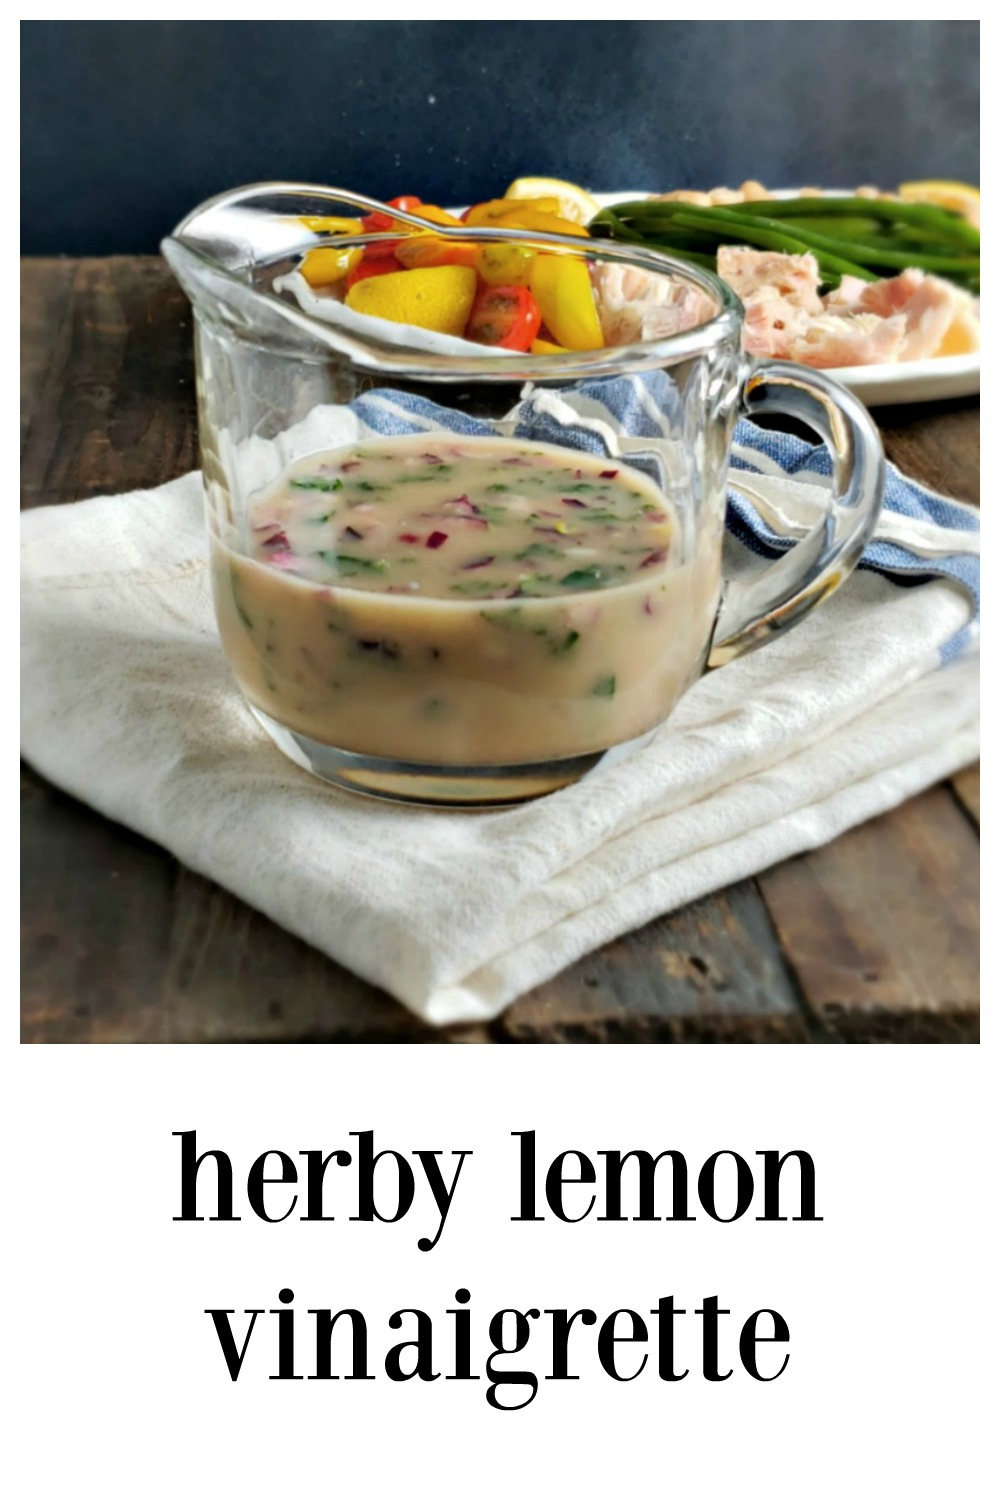 Herby Lemon Vinaigrette - Fabulous with a few secrets! This vinaigrette is a salad dressing, a marinade, and great drizzled over simple fish or chicken. #LemonVinaigrette #HerbLemonVinaigrette #HomemadeSaladDressing